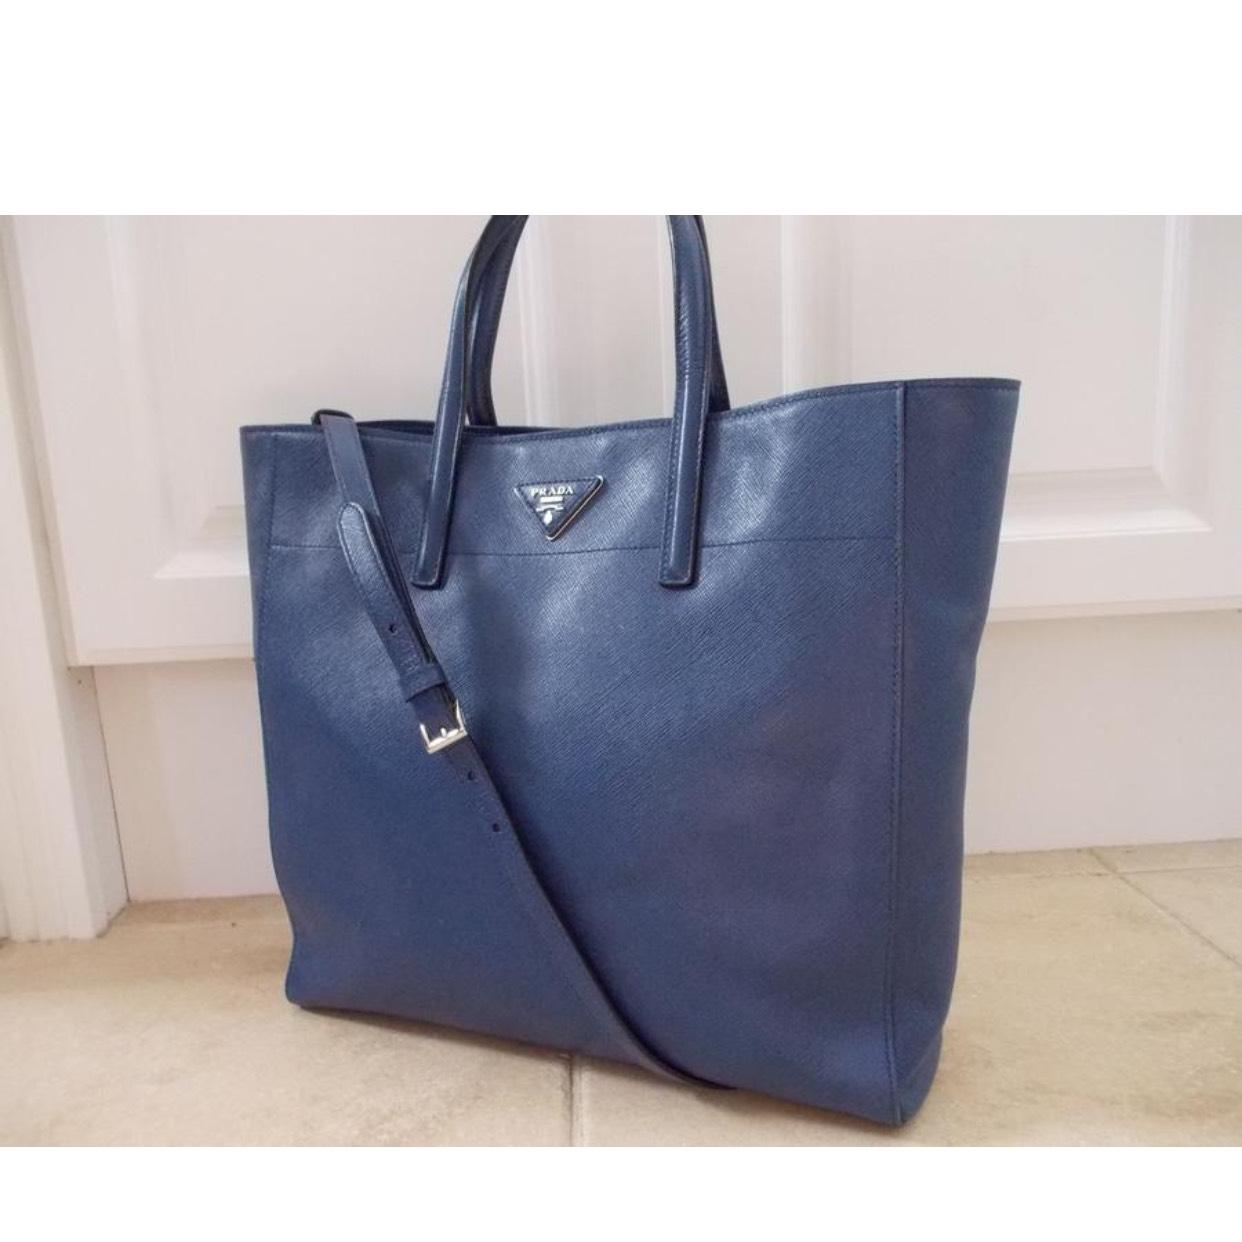 3f0c9a9699b6 ... canada prada tote with straps blue saffiano leather cross body bag  tradesy b180e 6cbba